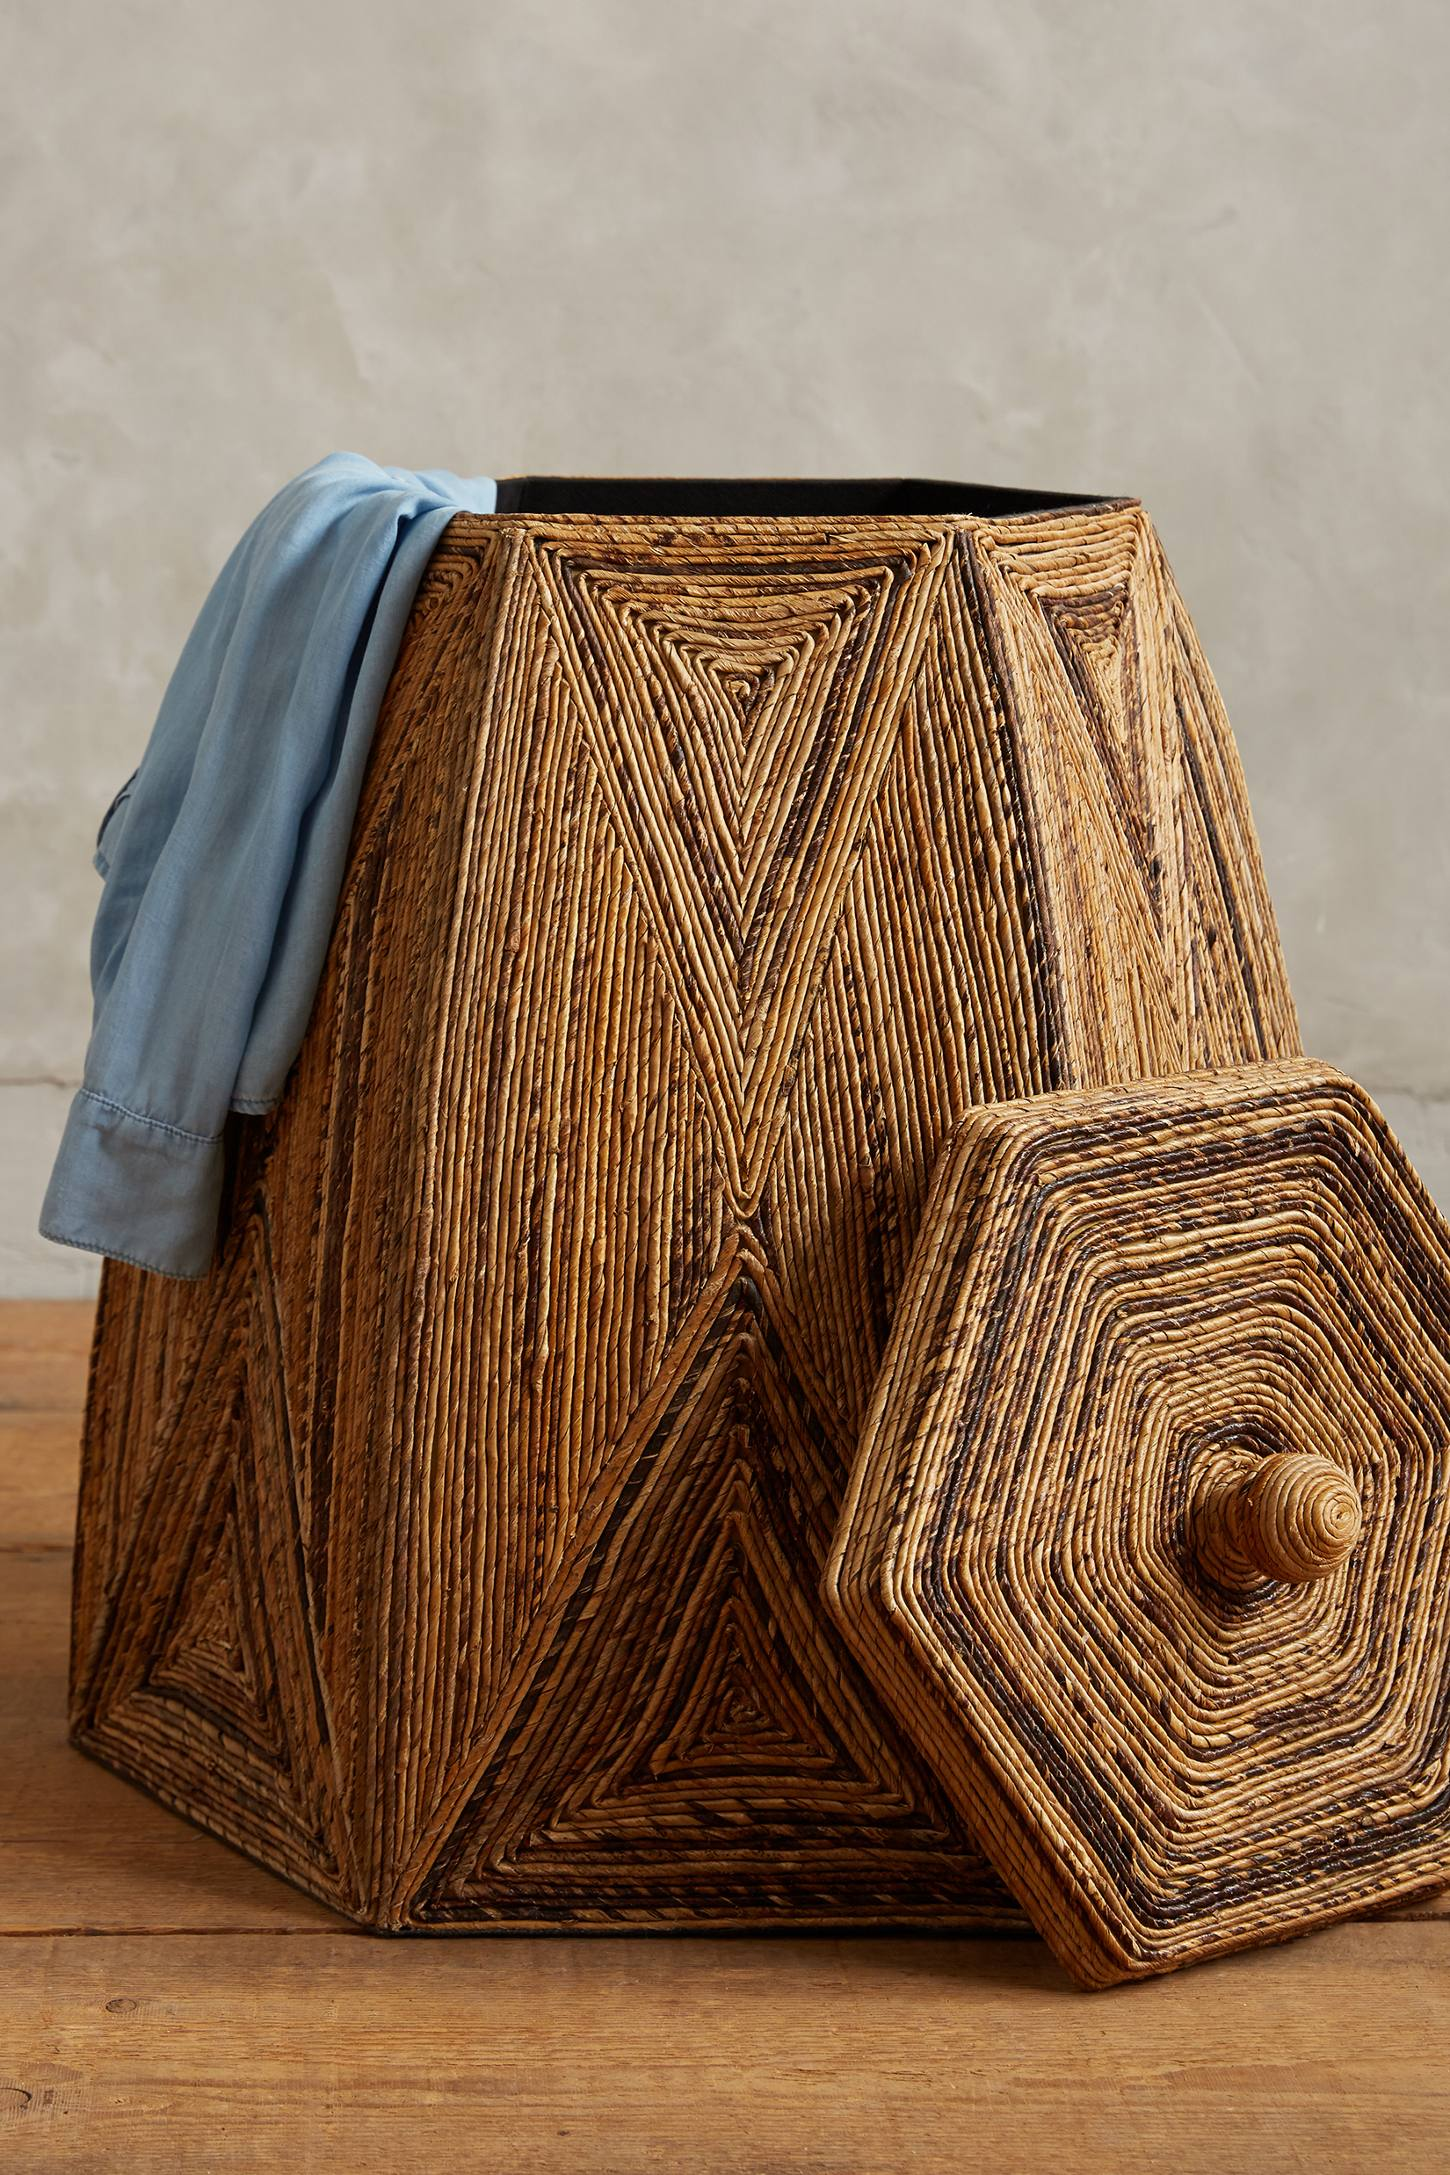 Earthy laundry basket from Anthropologie